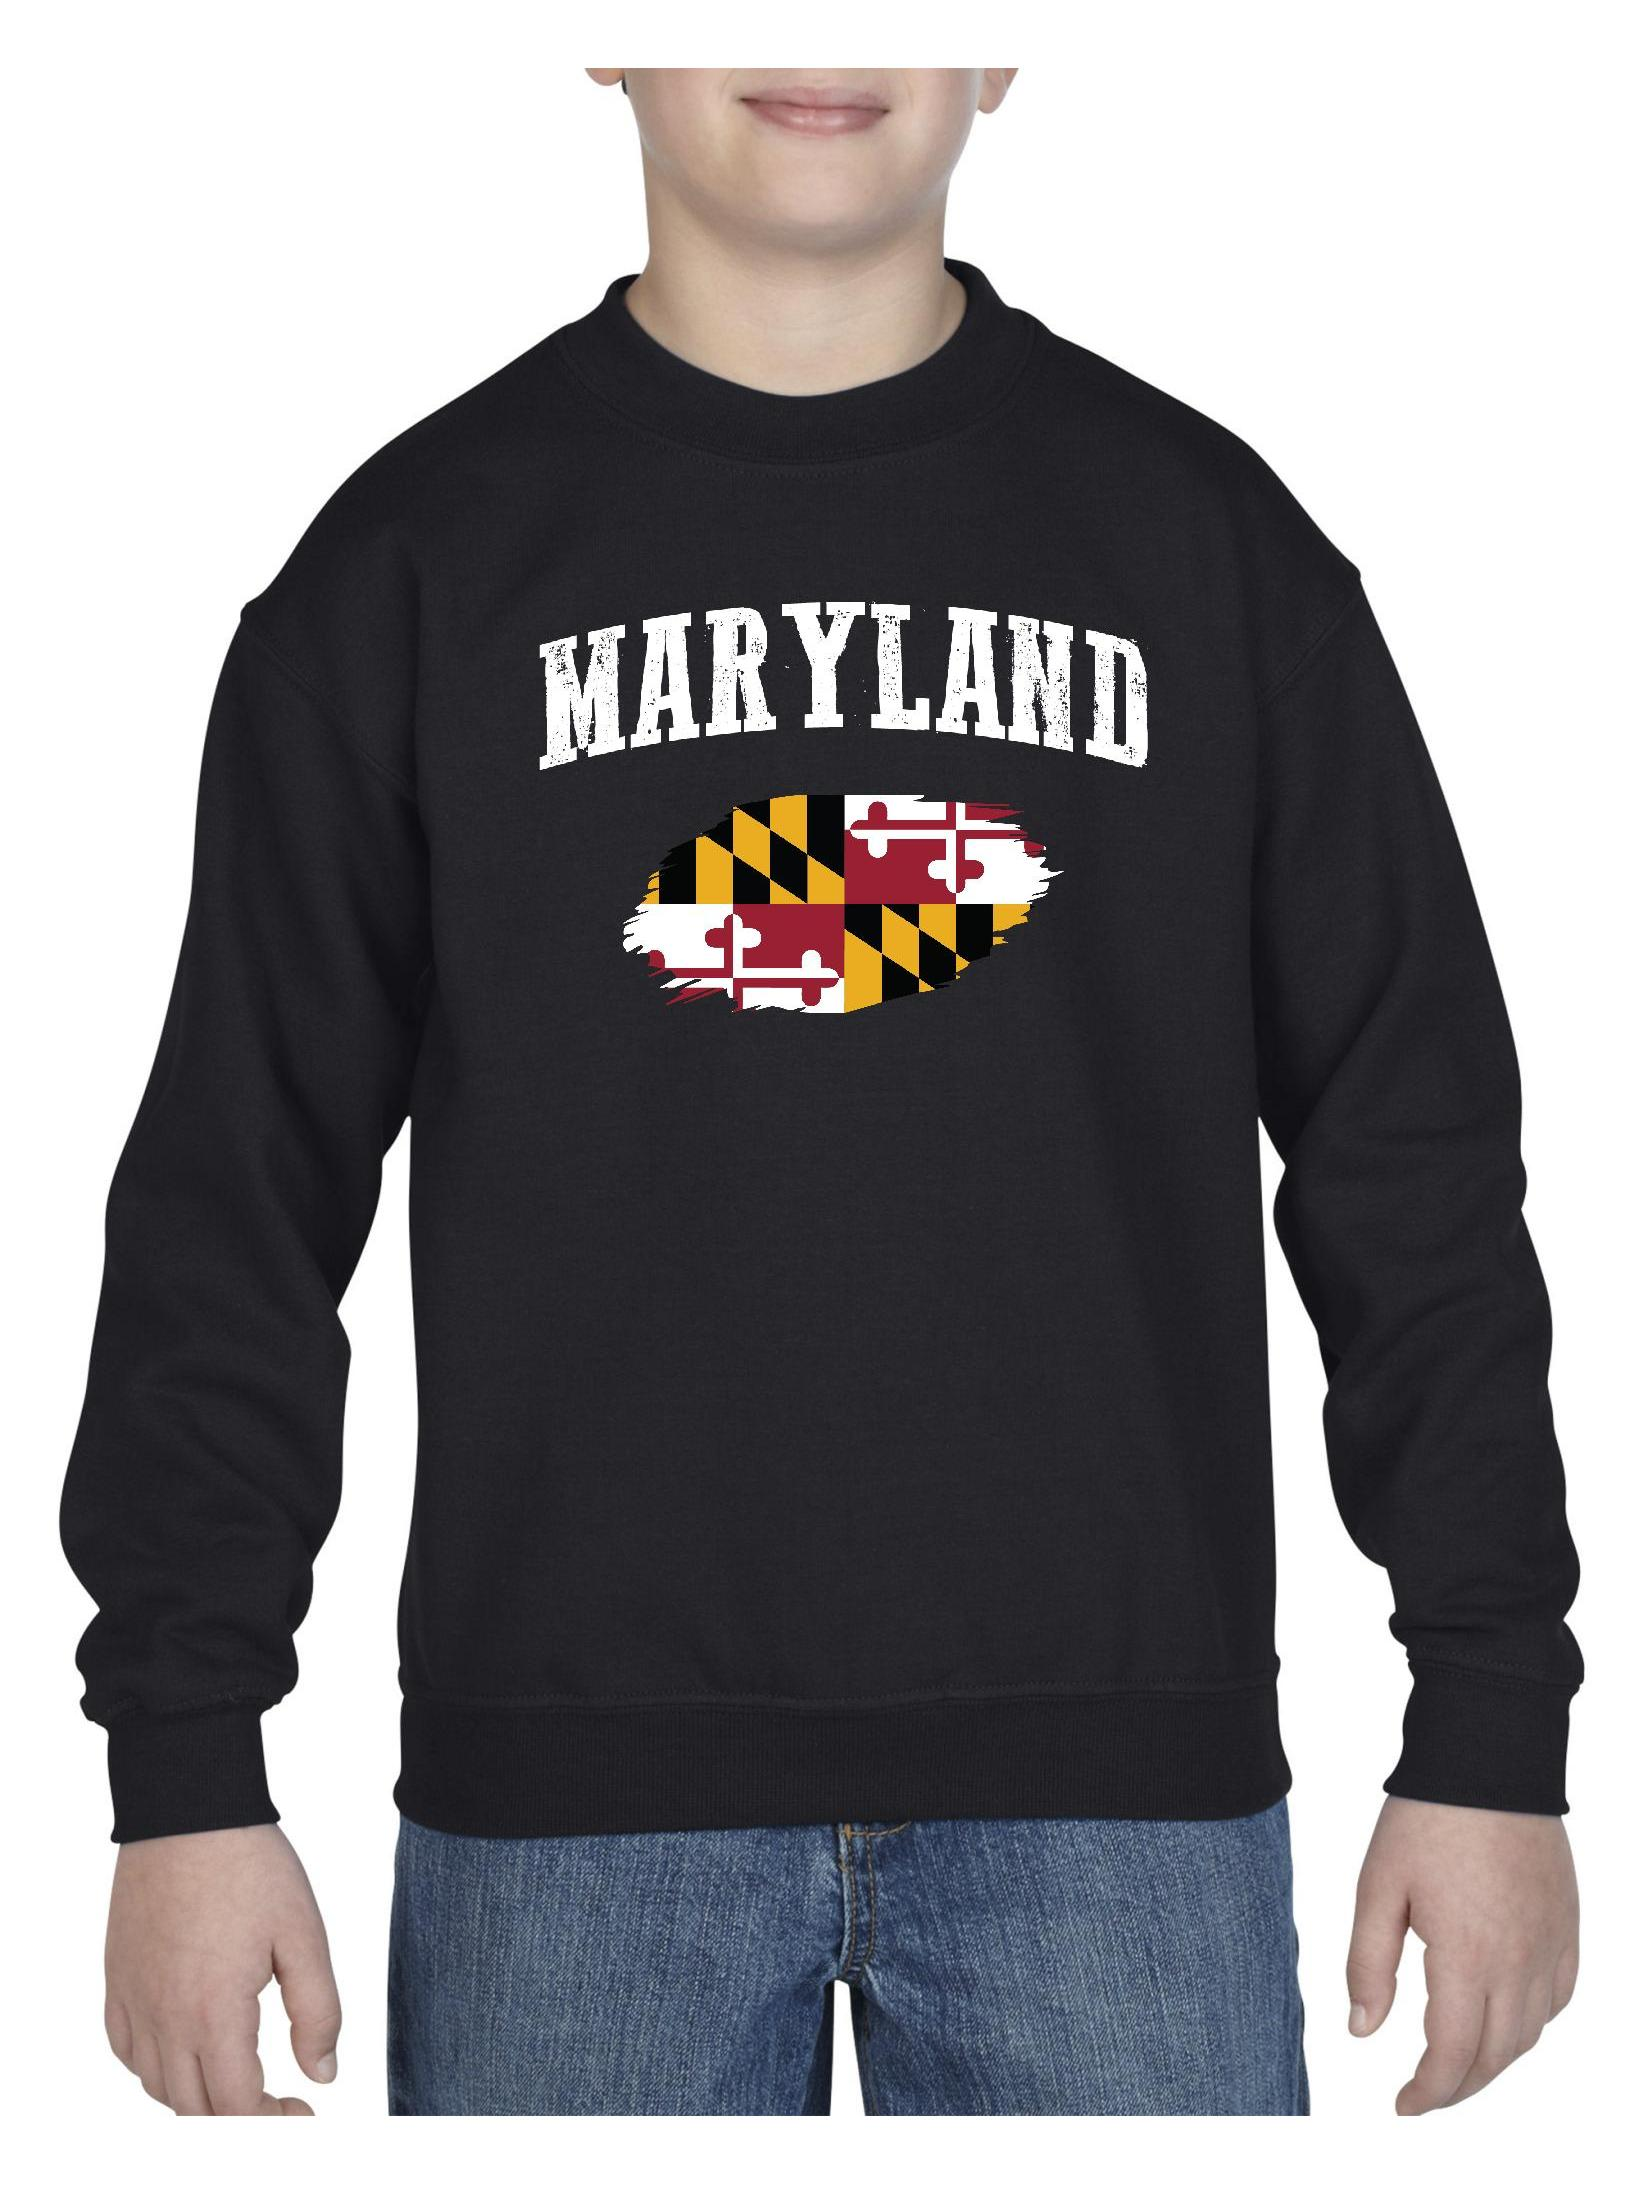 Maryland State Flag Unisex Youth Crewneck Sweatshirt